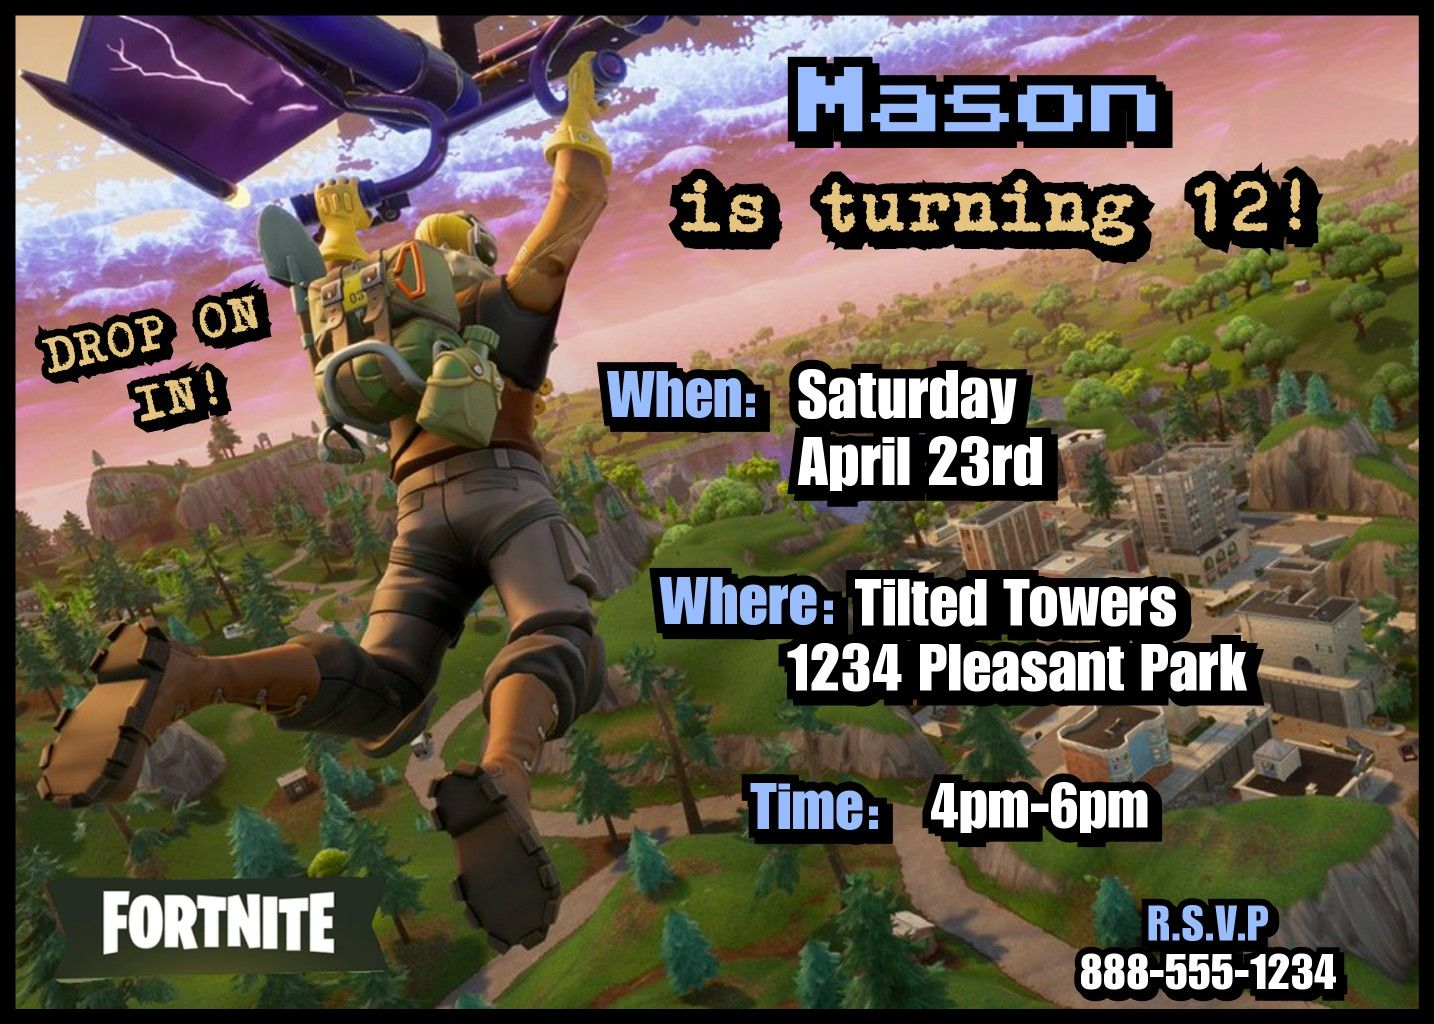 FORTNITE party invitations! -birthday printables -invites